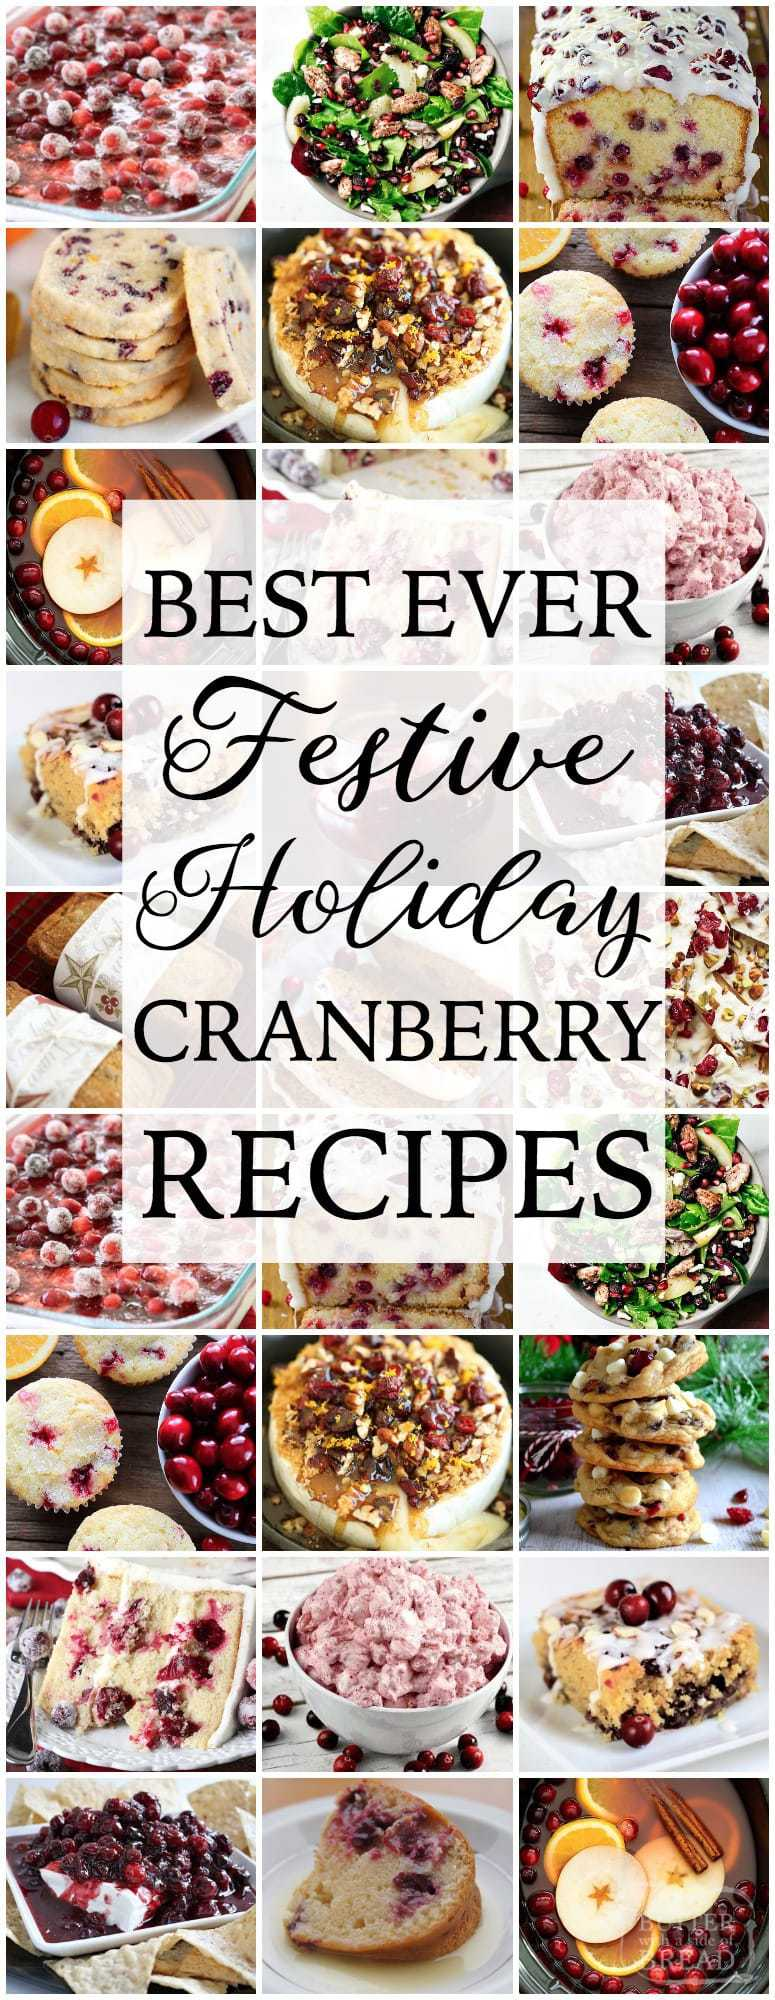 Cranberry recipes both sweet & savory, perfectly festive and delicious for the holidays. Easy to make cranberry recipes bursting with flavor. Perfectly #festive #holiday #cranberry #recipes for #Thanksgiving and #Christmas from Butter With A Side of Bread